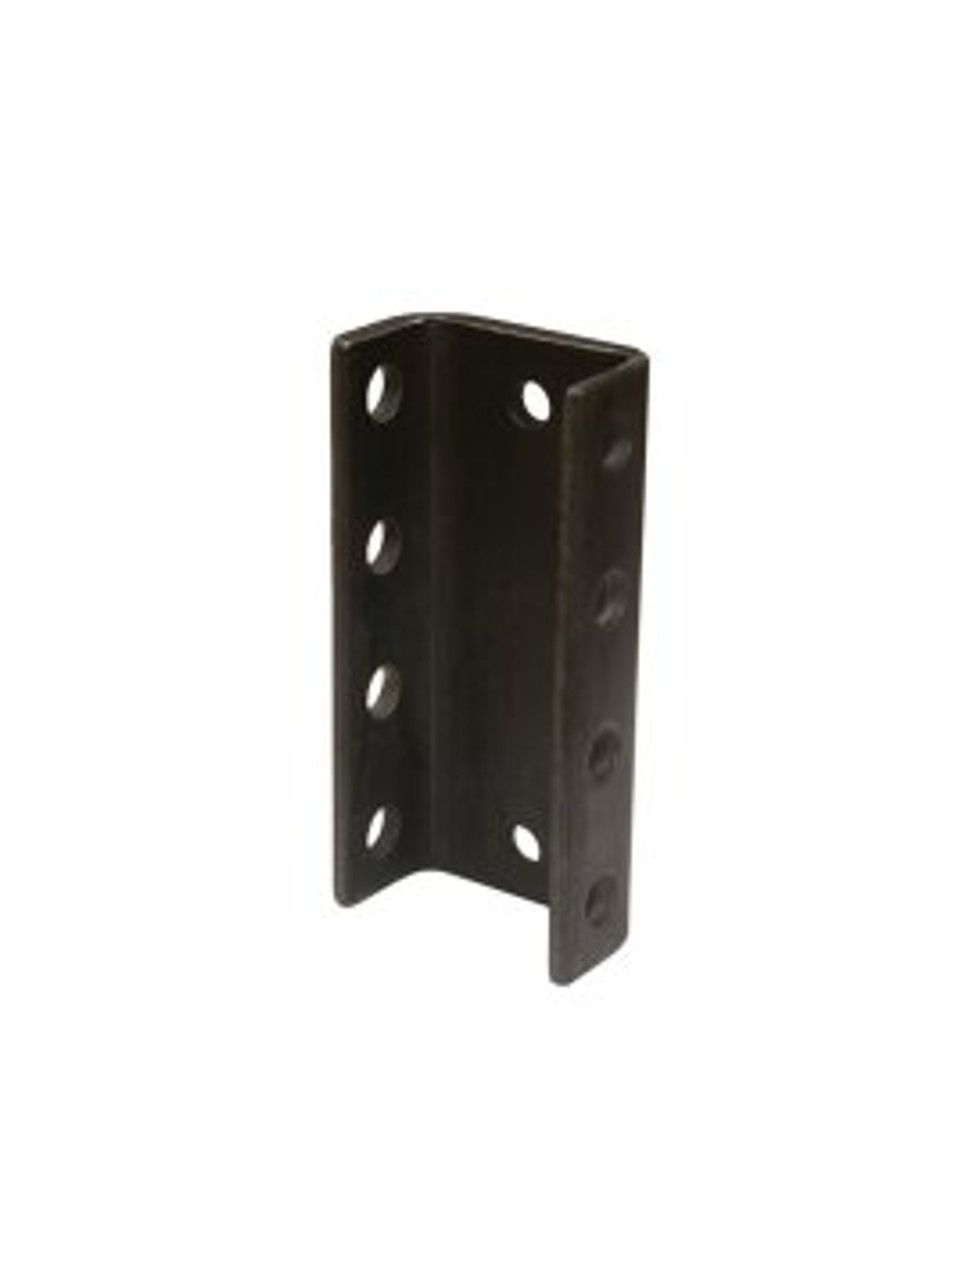 5736 --- Adjustable Channel with 4 Hole Sets - 20,000 lb - Weld On